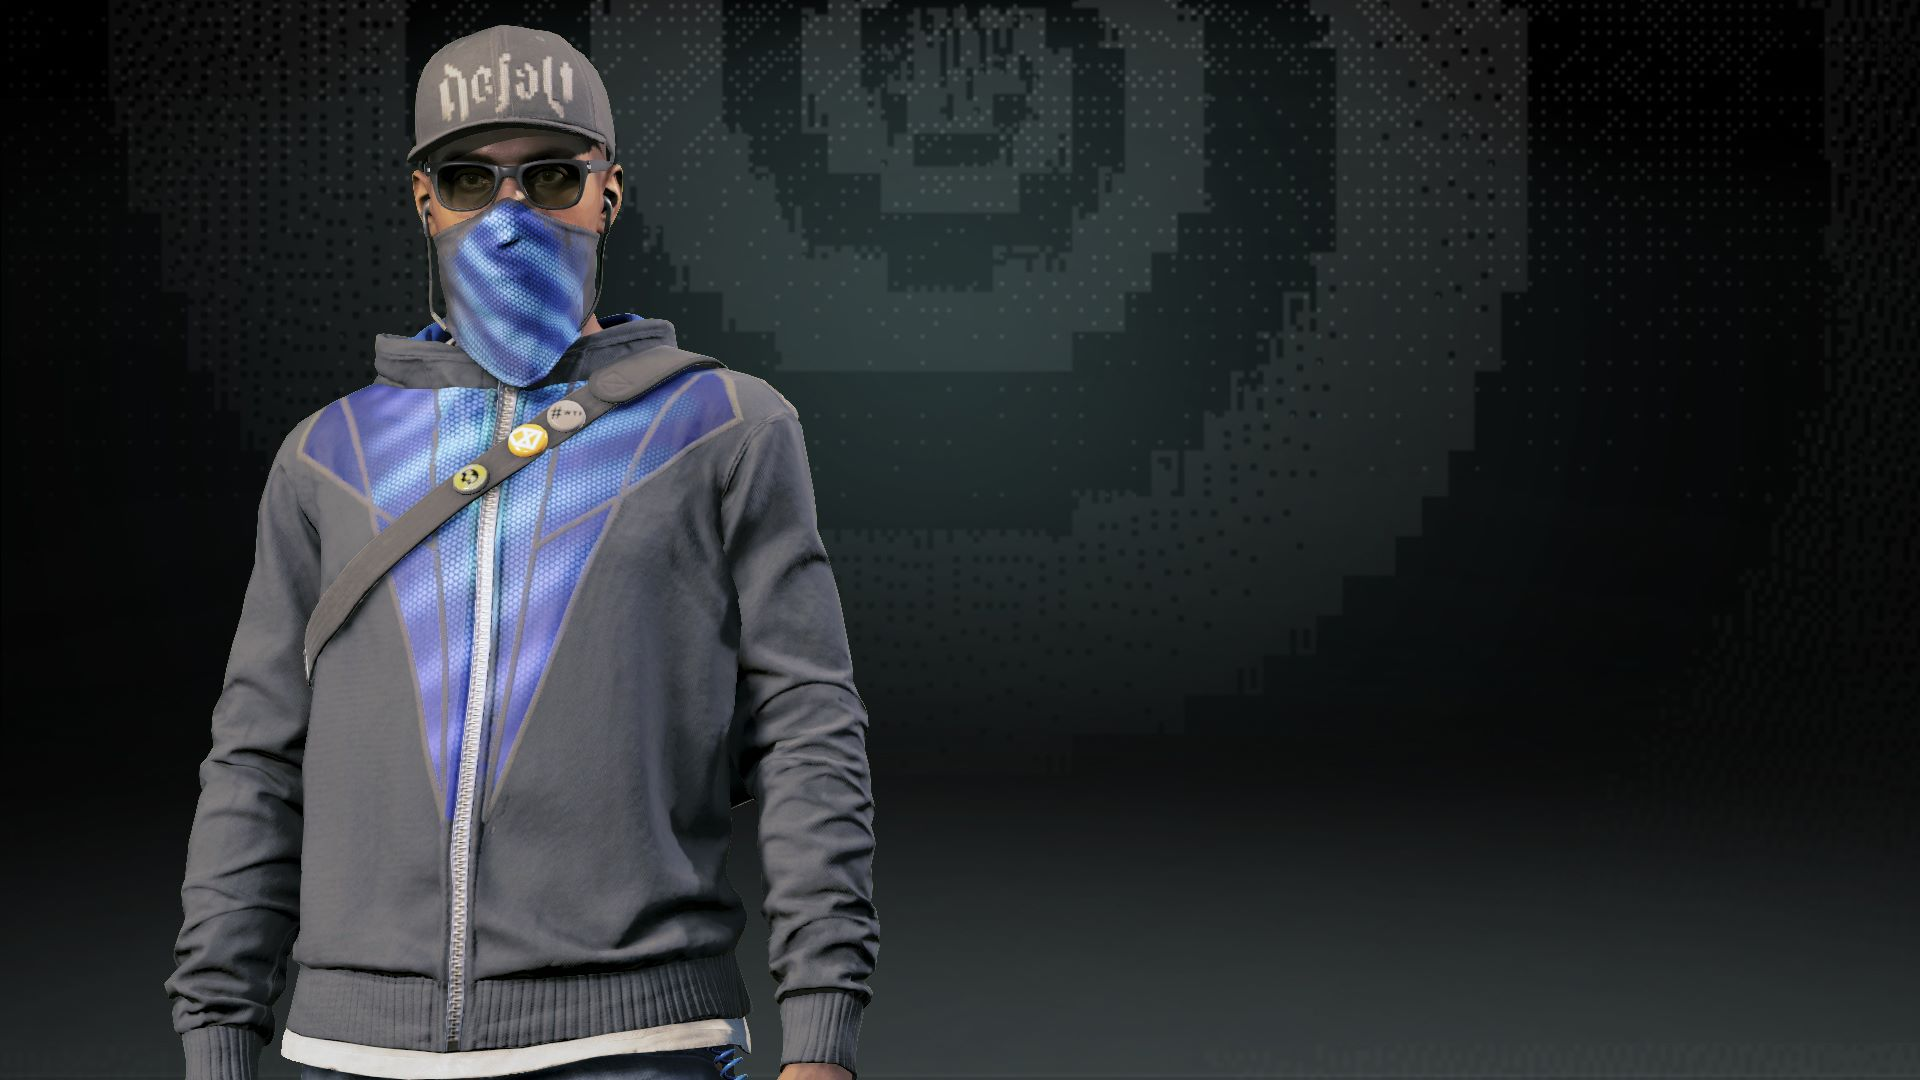 Buy Watch Dogs 2 Defalt Outfit Pack Microsoft Store